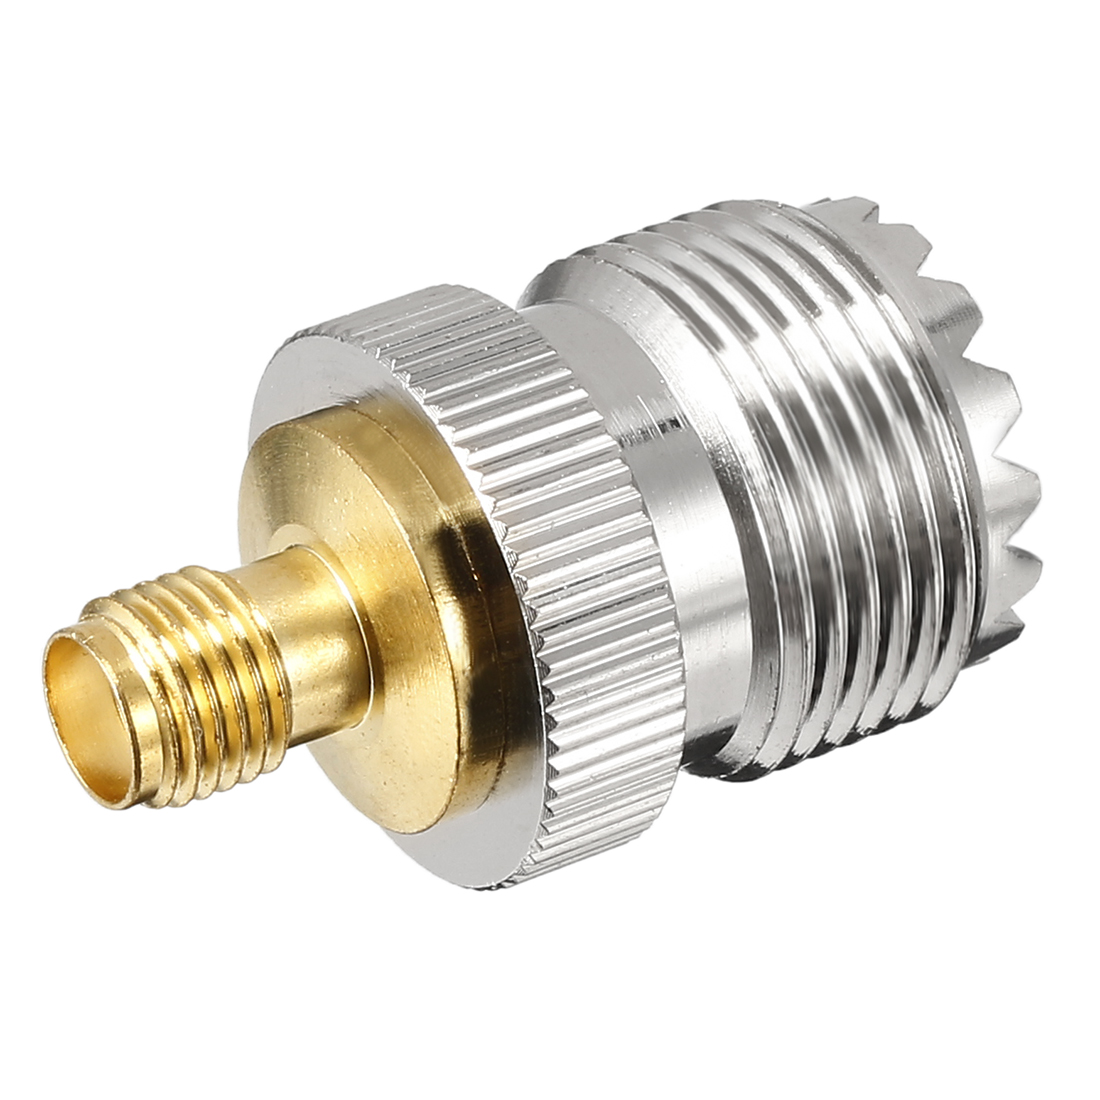 Silver/Gold Tone SMA Female to SL16 Female Jack RF Coaxial Adapter Connector